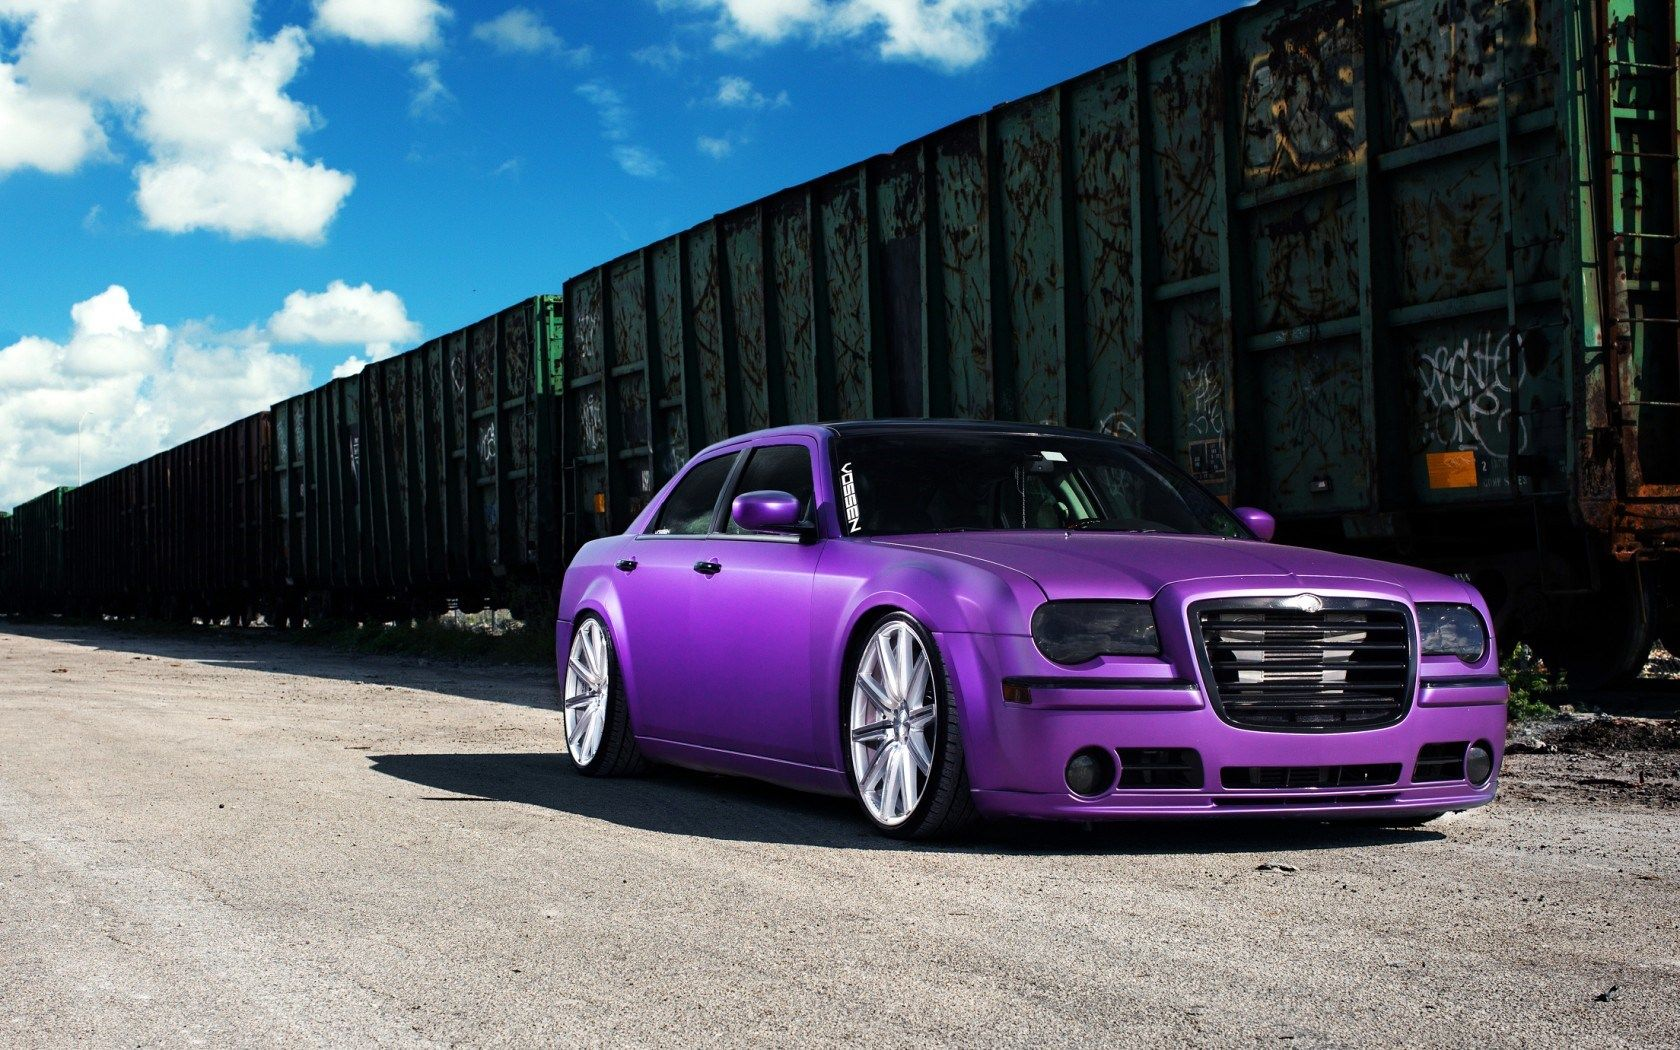 Chrysler purple car hd wallpaper expensive cars hd - Bmw cars wallpapers hd free download ...